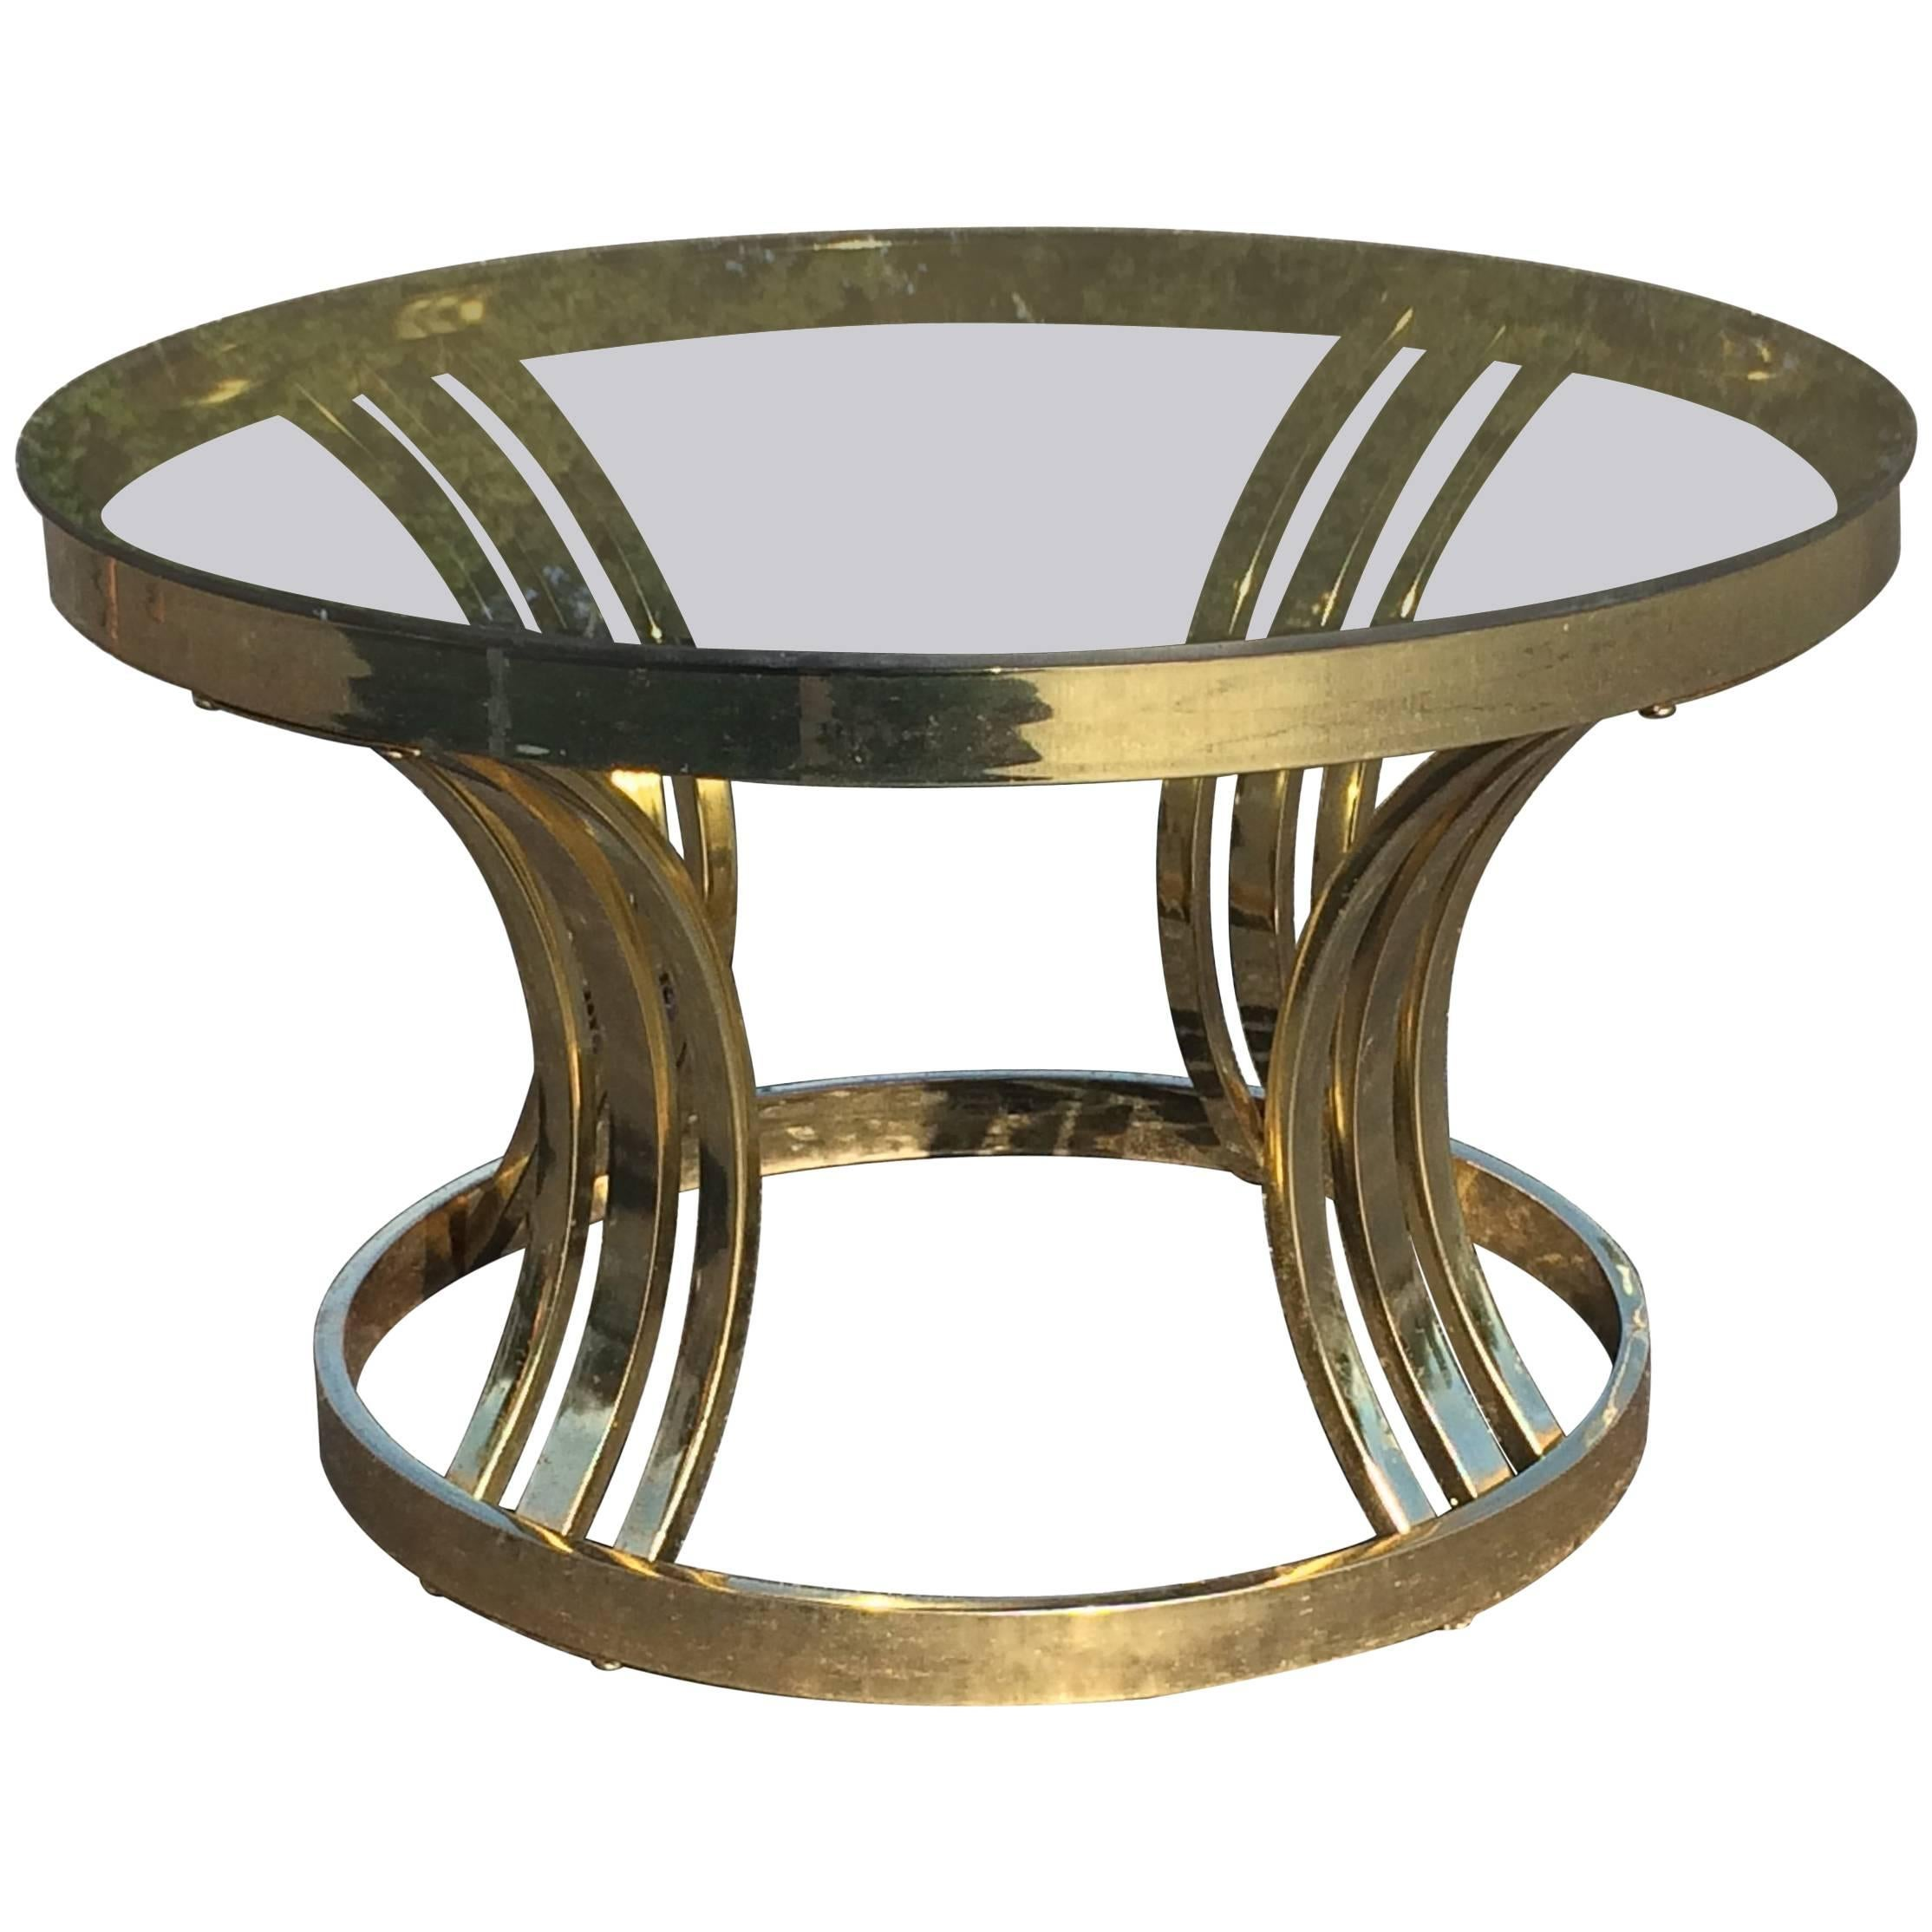 Mid Century Brass And Smoked Glass Round Coffee Table By Milo Baughman 1